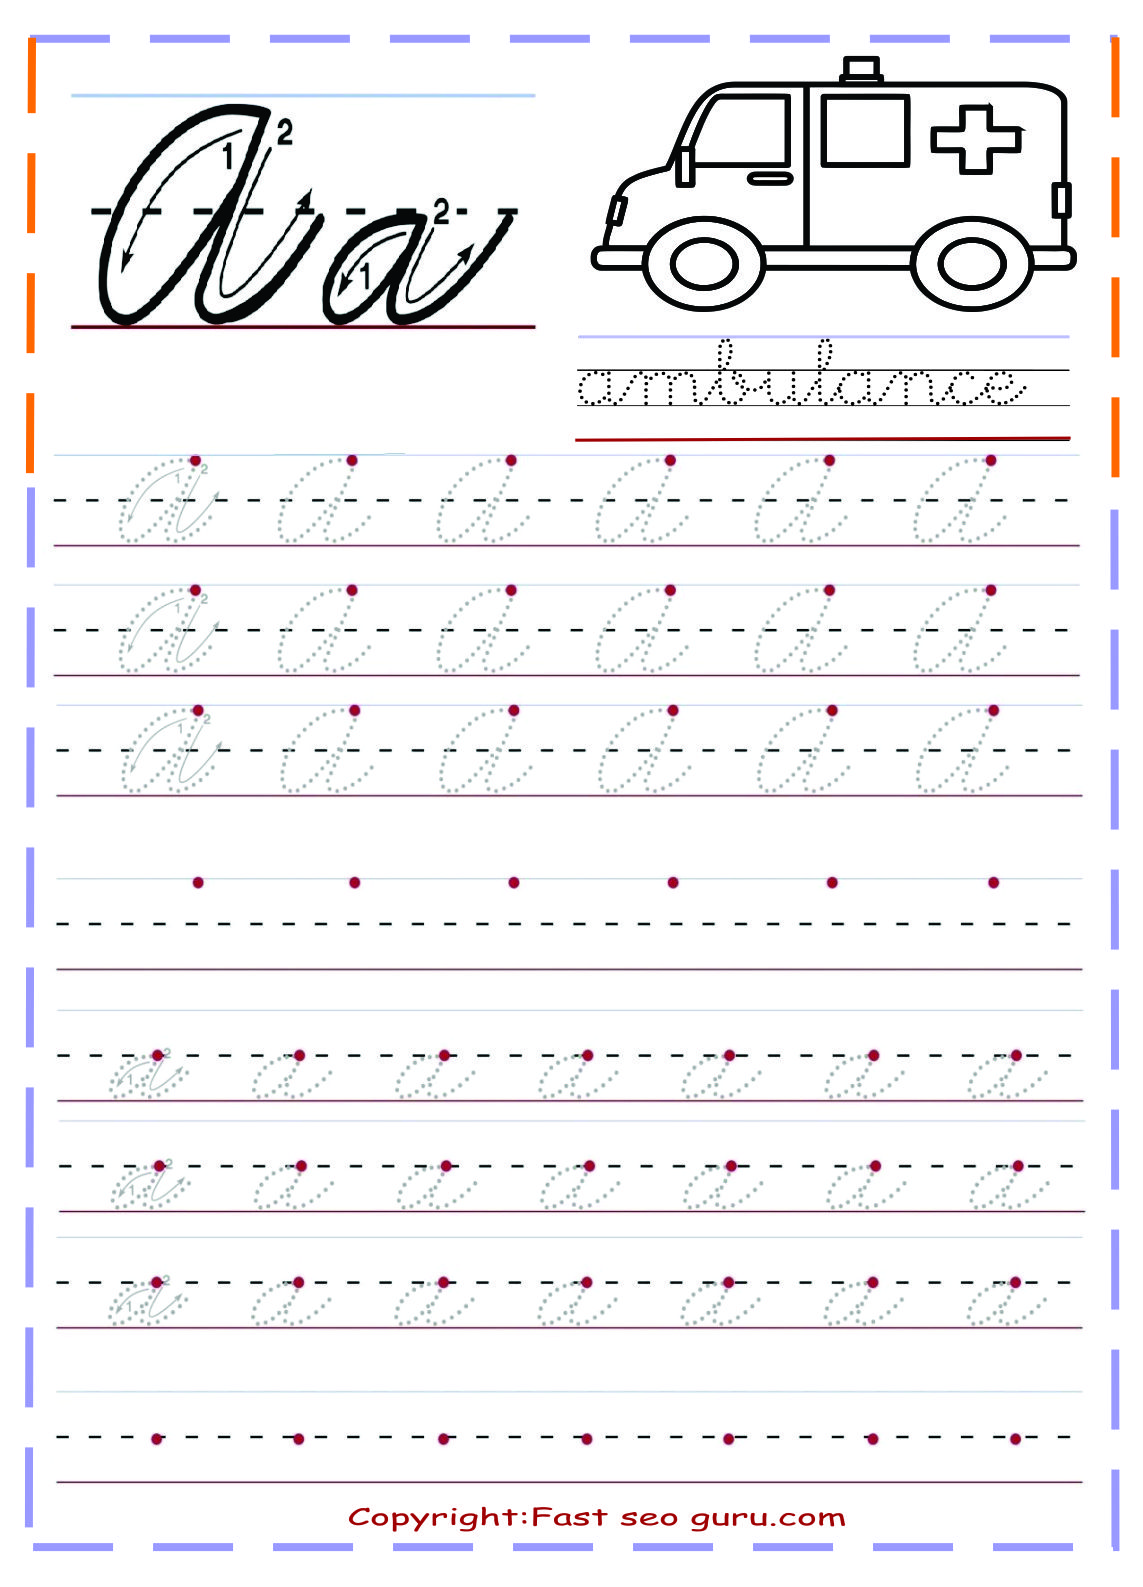 Workbooks Left Handed Cursive Writing Worksheets Free Printable